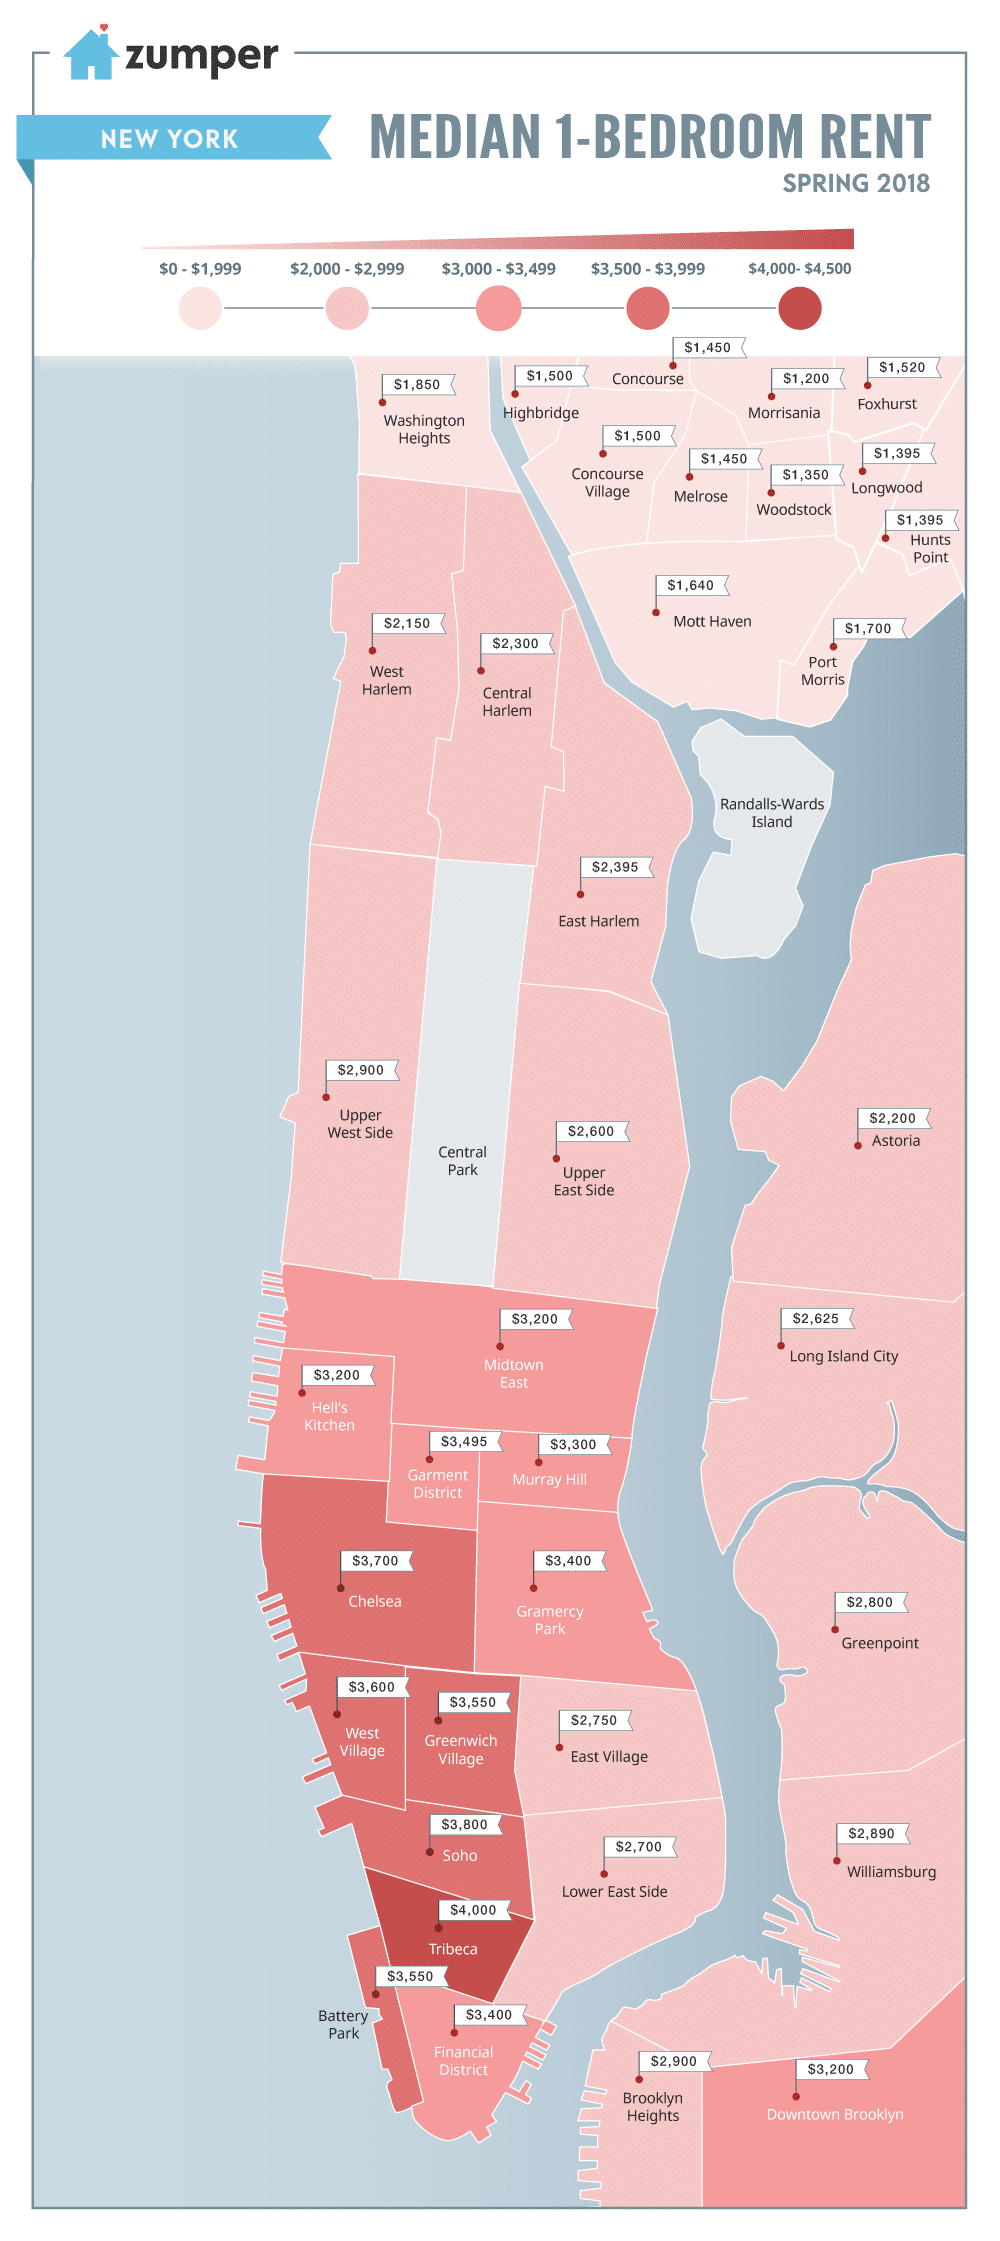 Mapping New York City Neighborhood Rent Prices This Spring 2018